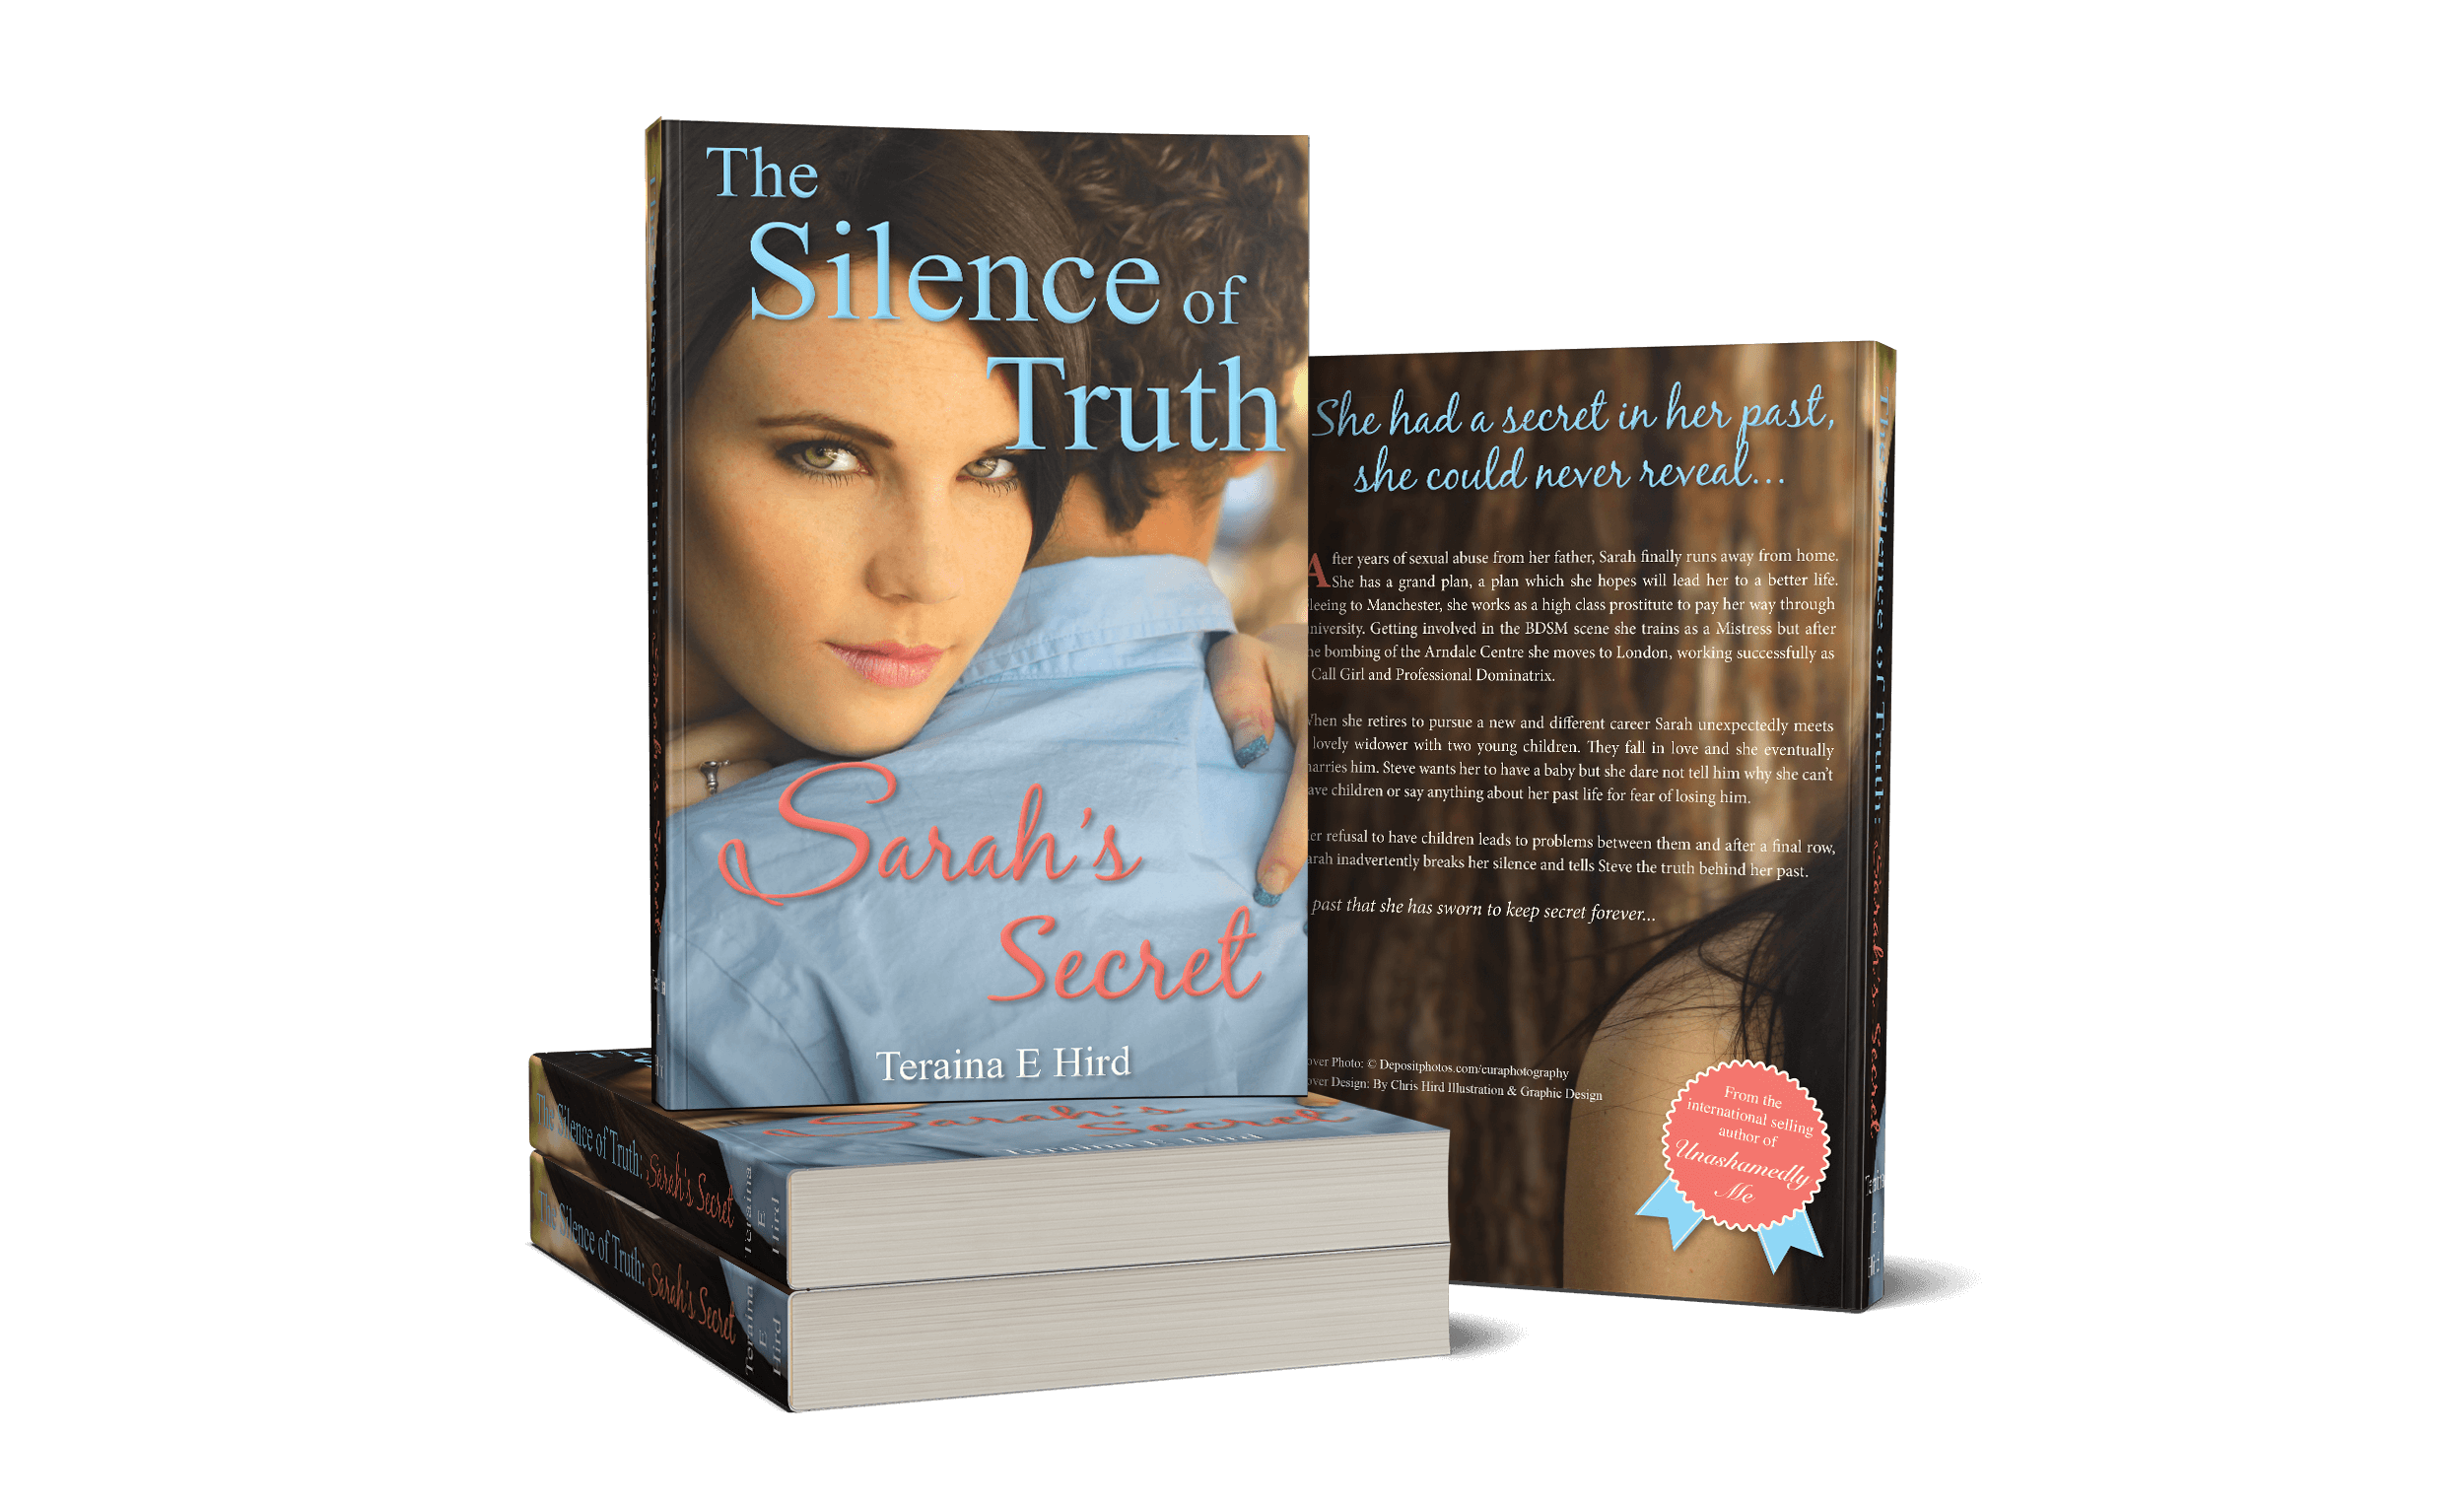 Book Jacket for The Silence of Truth - Sarah's Secret